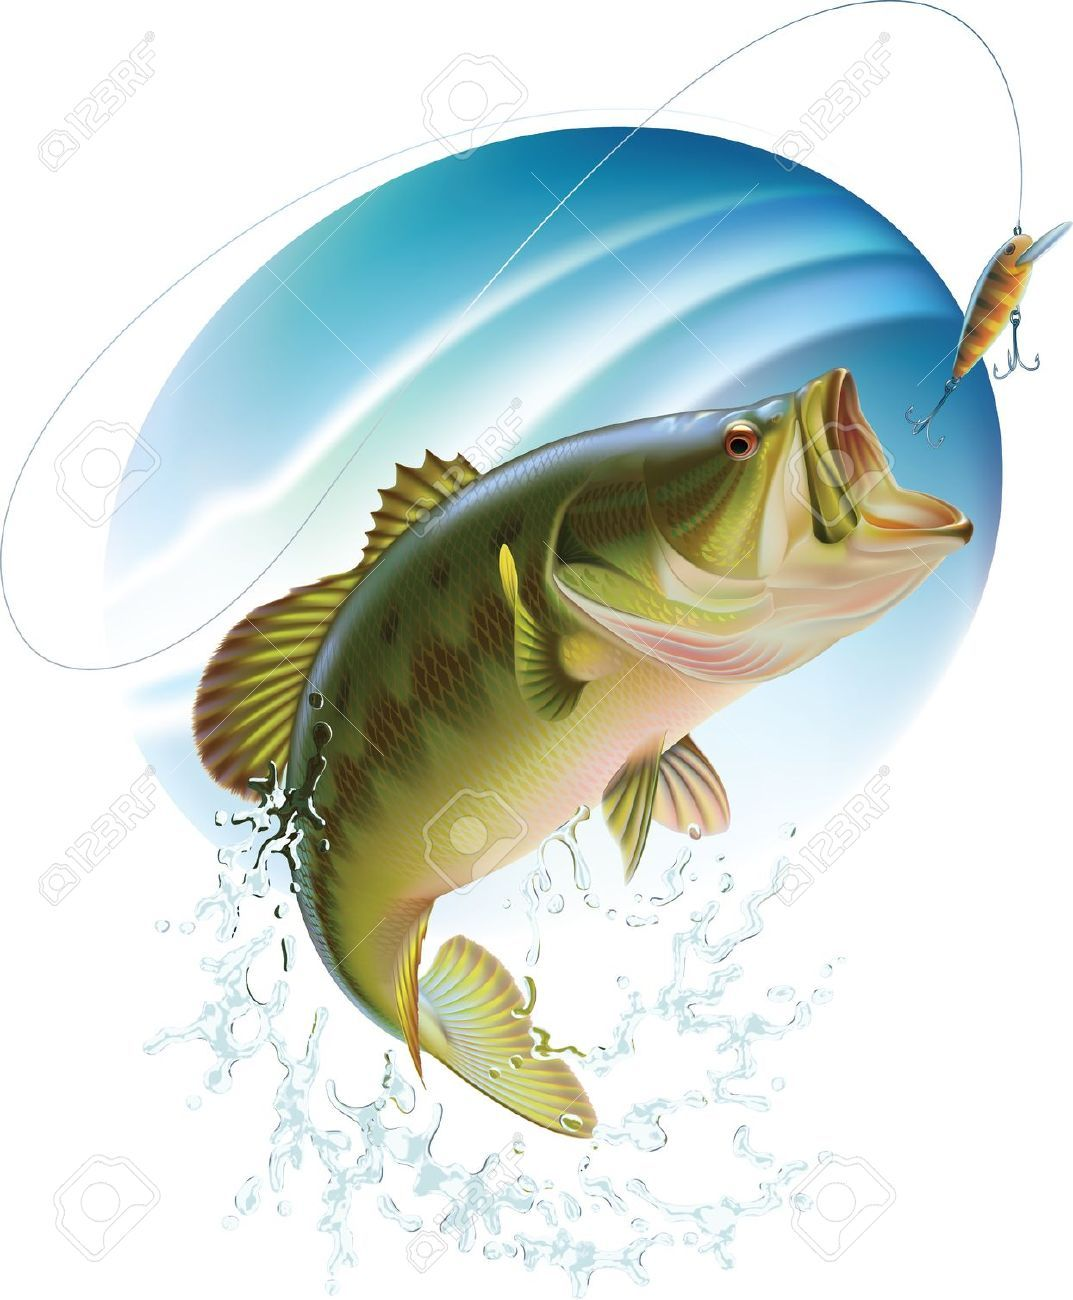 Awesome Largemouth Bass Fish Drawings Fish Pinterest Bass